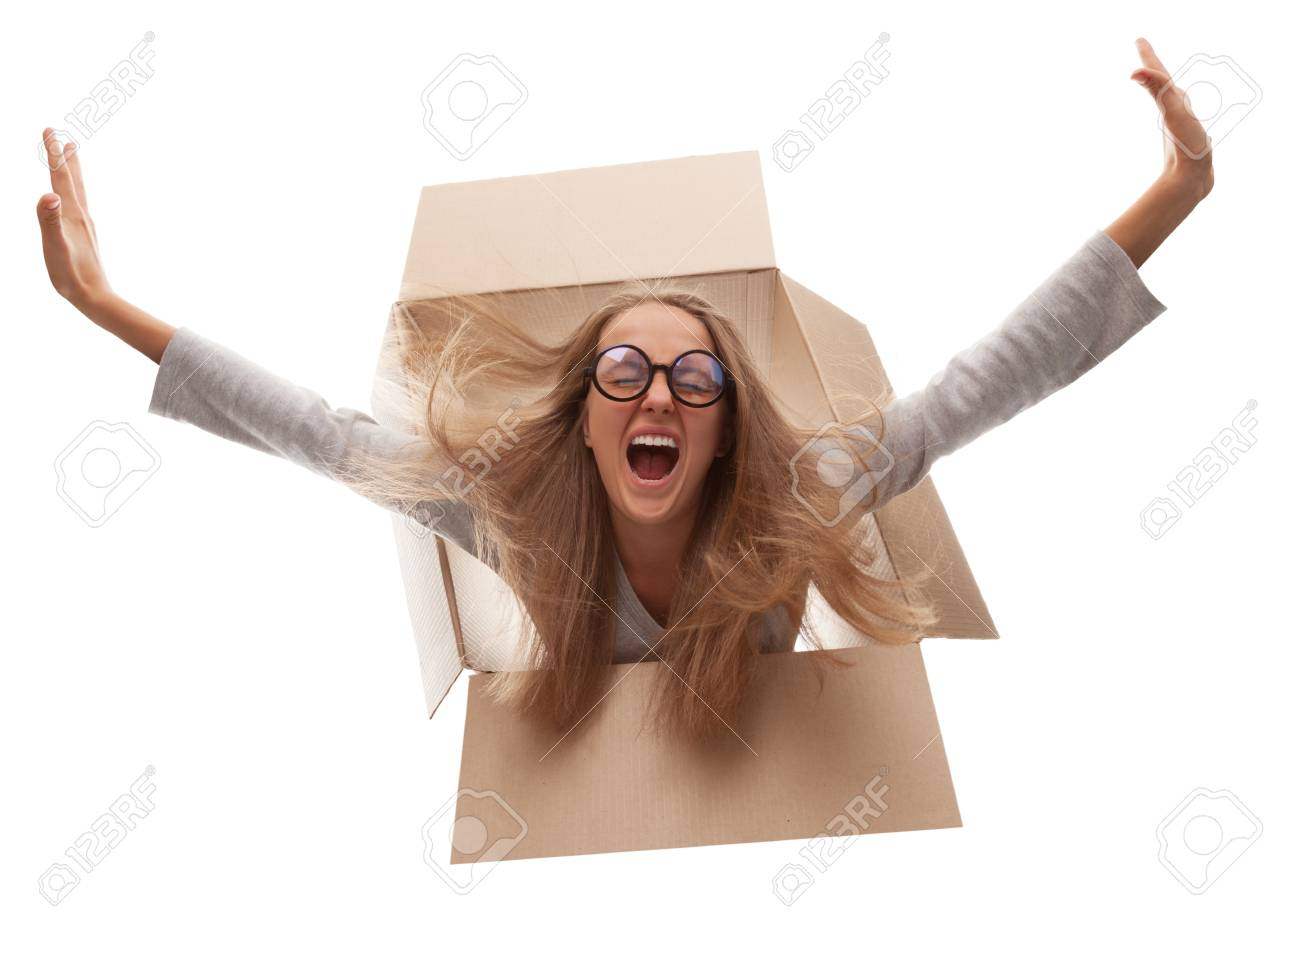 The girl in a cardboard box flies in white background Stock Photo - 15073228